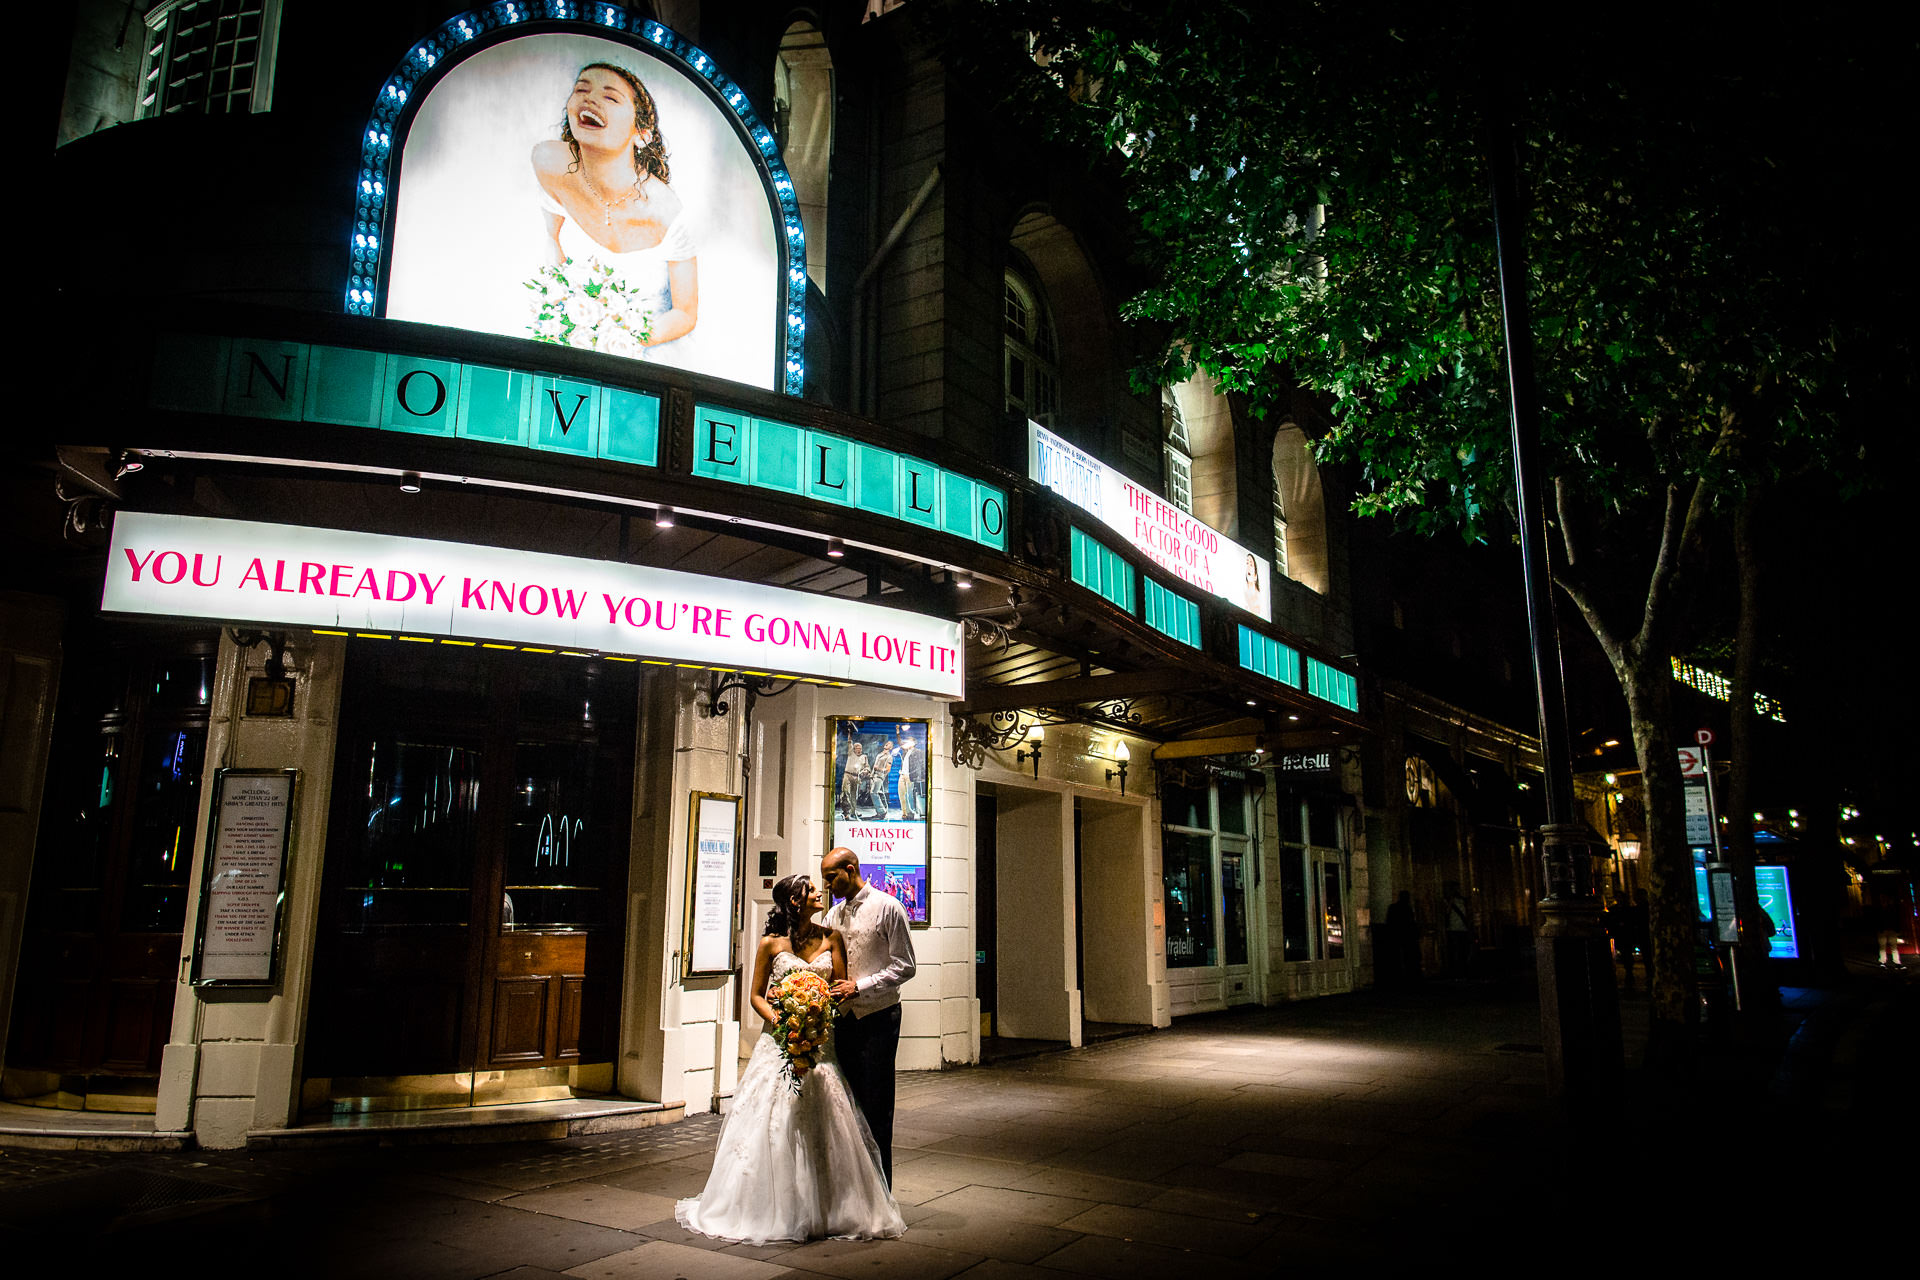 Tamil Wedding Photo Session In Central London